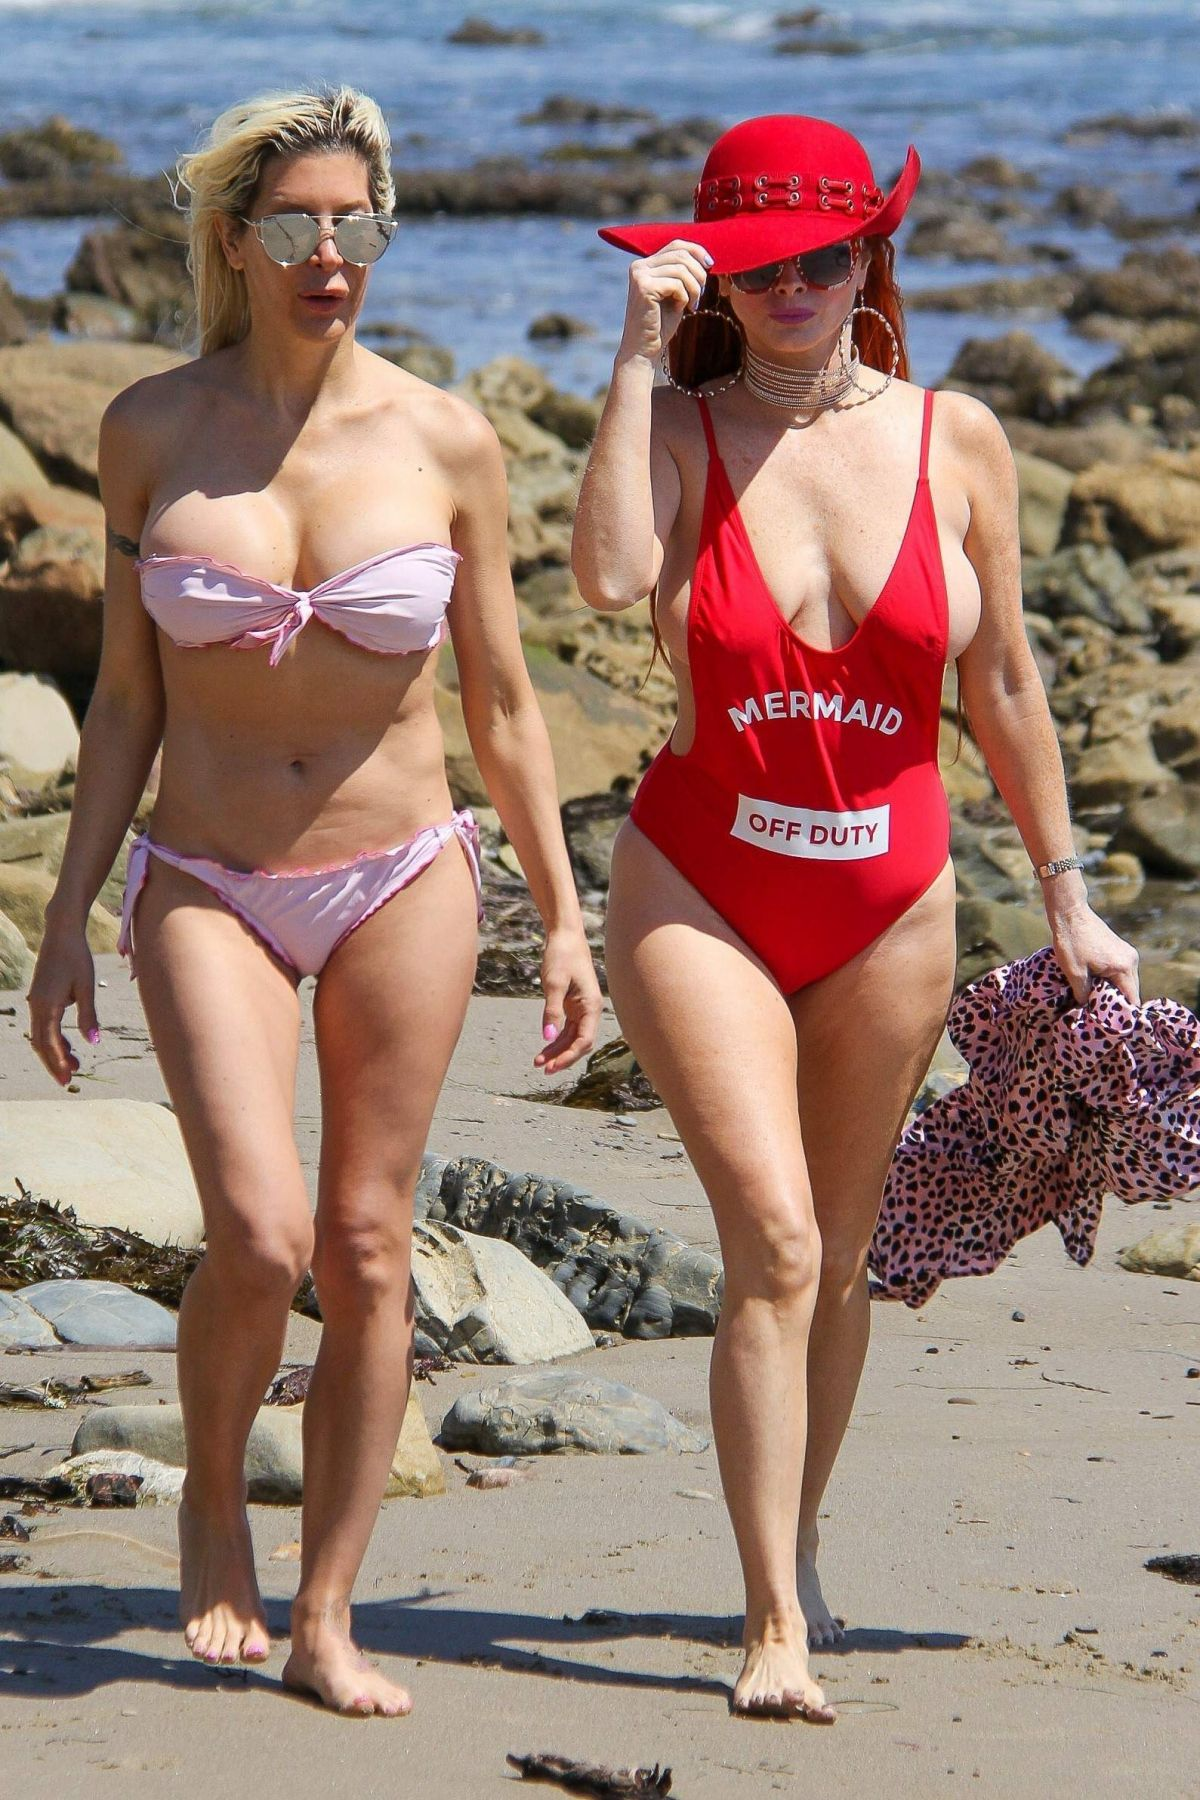 Frenchy Morgan And Phoebe Price Impromptu Photoshoot In